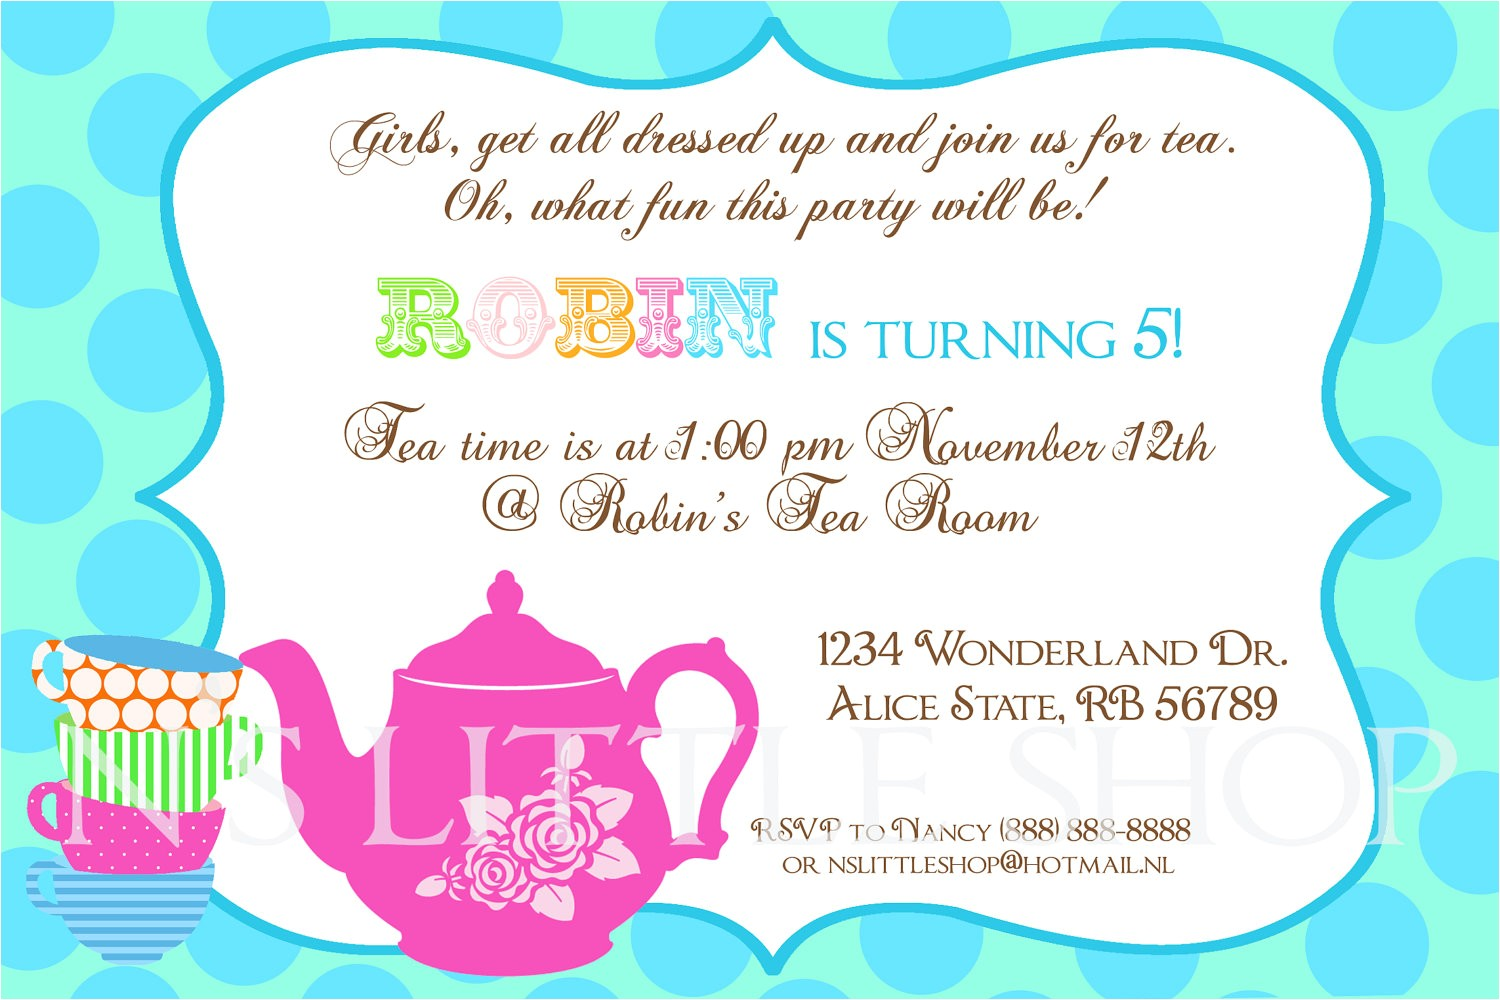 Invite to A Party Wording Tea Party Invitation Wording Tea Party Invitation Wording